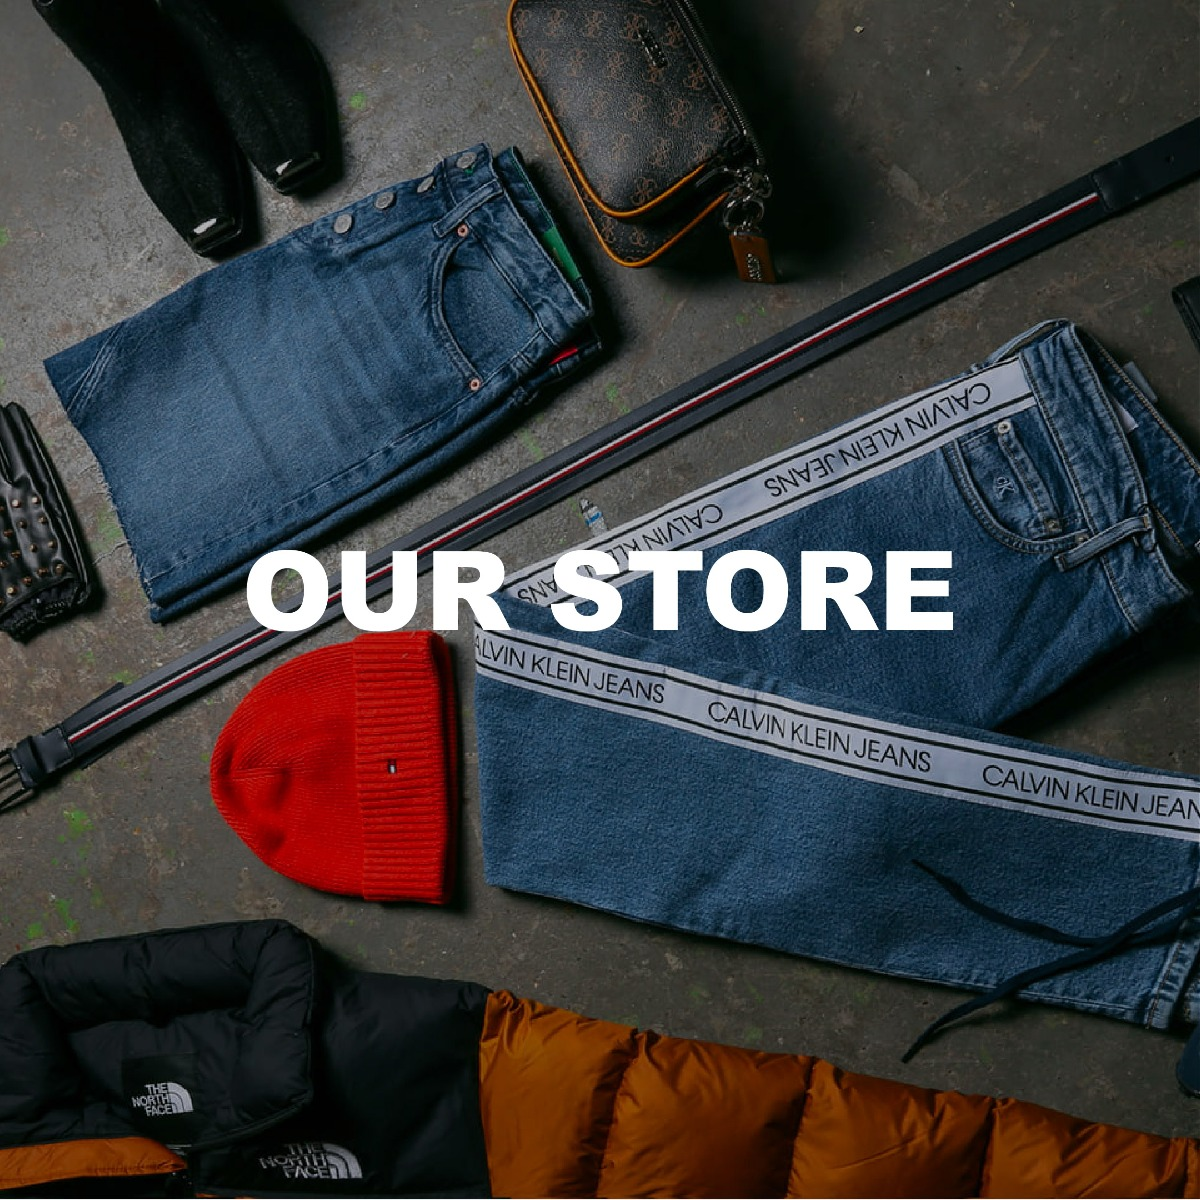 ourstore-21